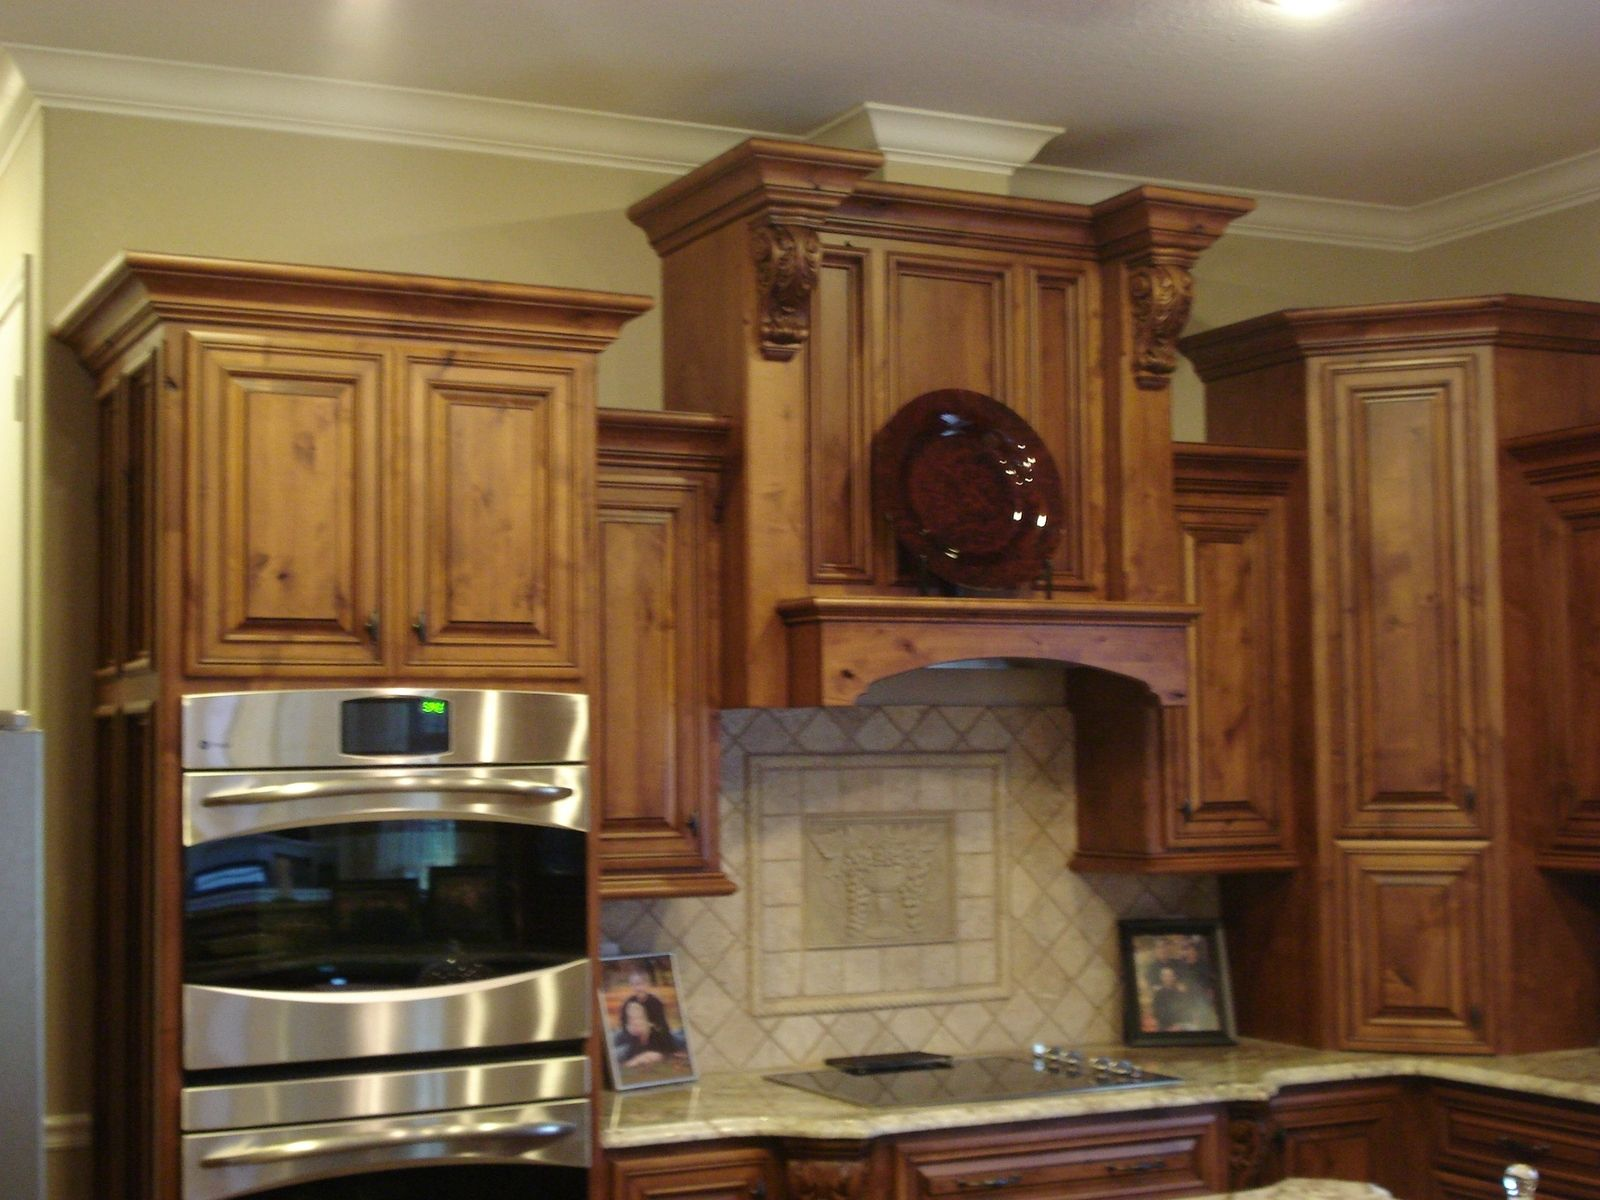 kitchen cabinets knotty alder custom knotty alder stepped kitchen by creative cabinetry 20684